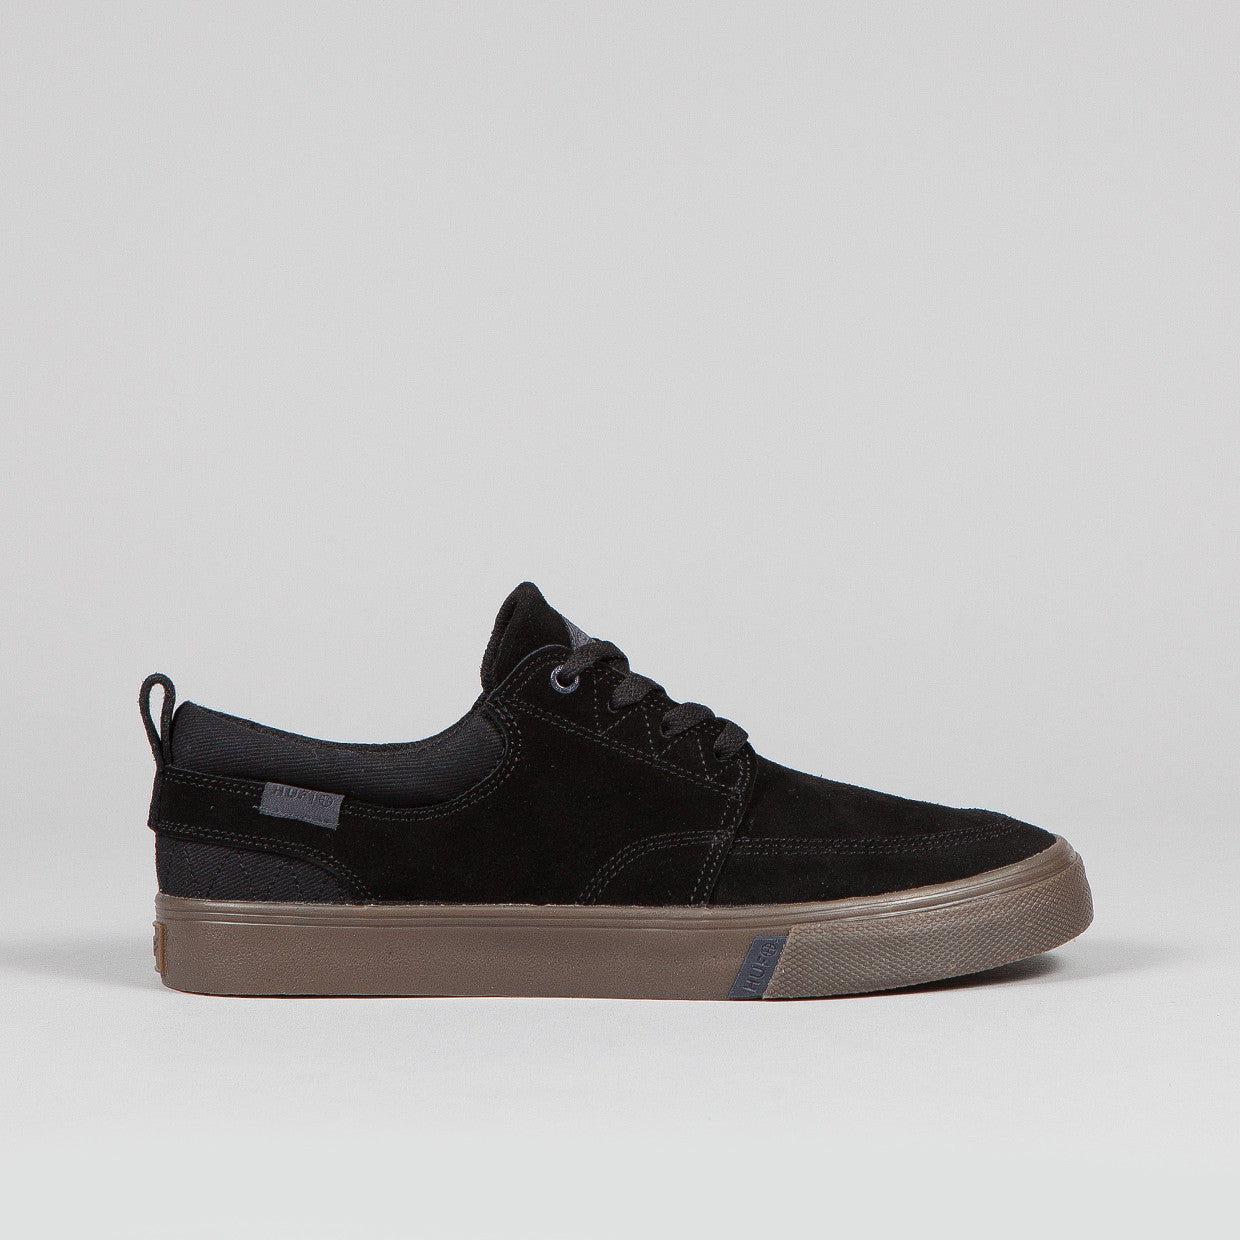 HUF Ramondetta Black / Dark Gum